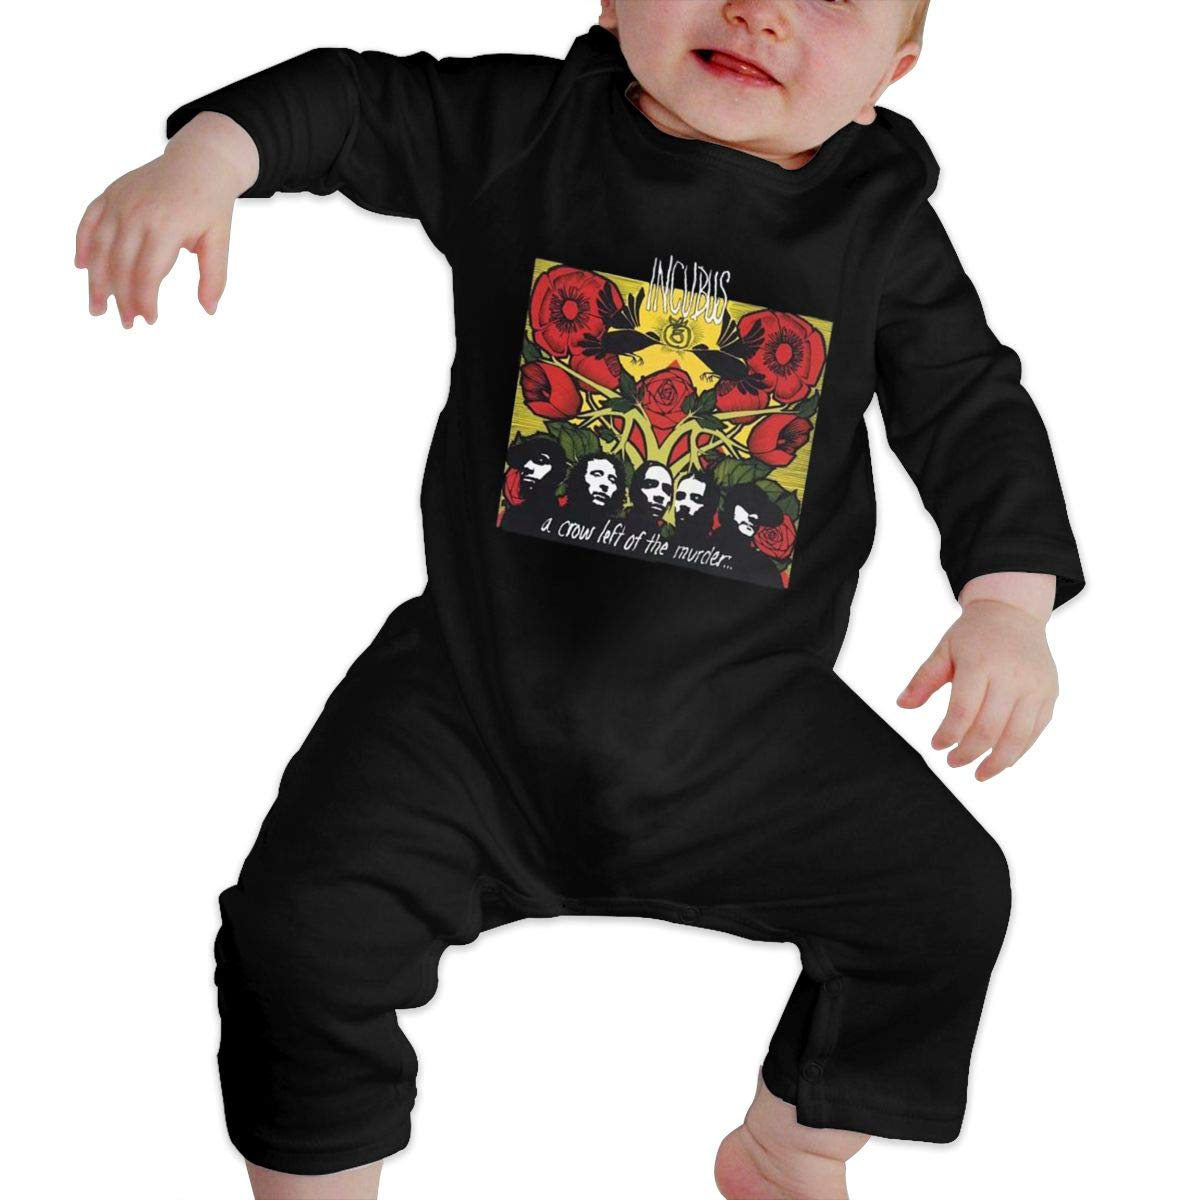 Fional Infant Long Sleeve Romper Incubus-A-Crow-Left-of-The-Murder Newborn Babys 0-24M Organic Cotton Jumpsuit Outfit